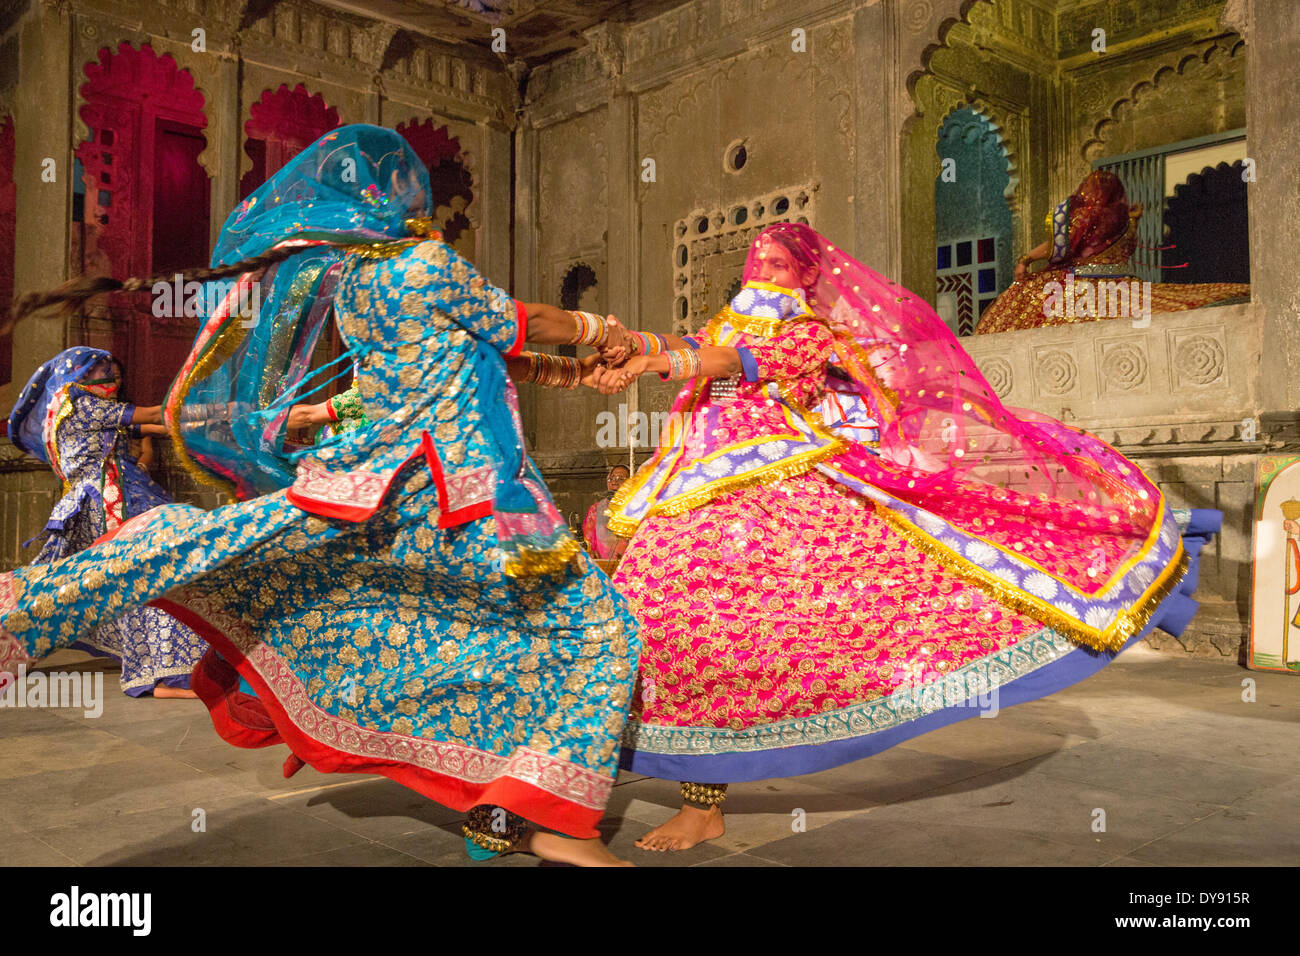 Spectacle de danse show museum Musée Bagore Ki Haveli Udaipur Rajasthan Inde Asie tradition folklore costumes nationaux traditionnels, Photo Stock